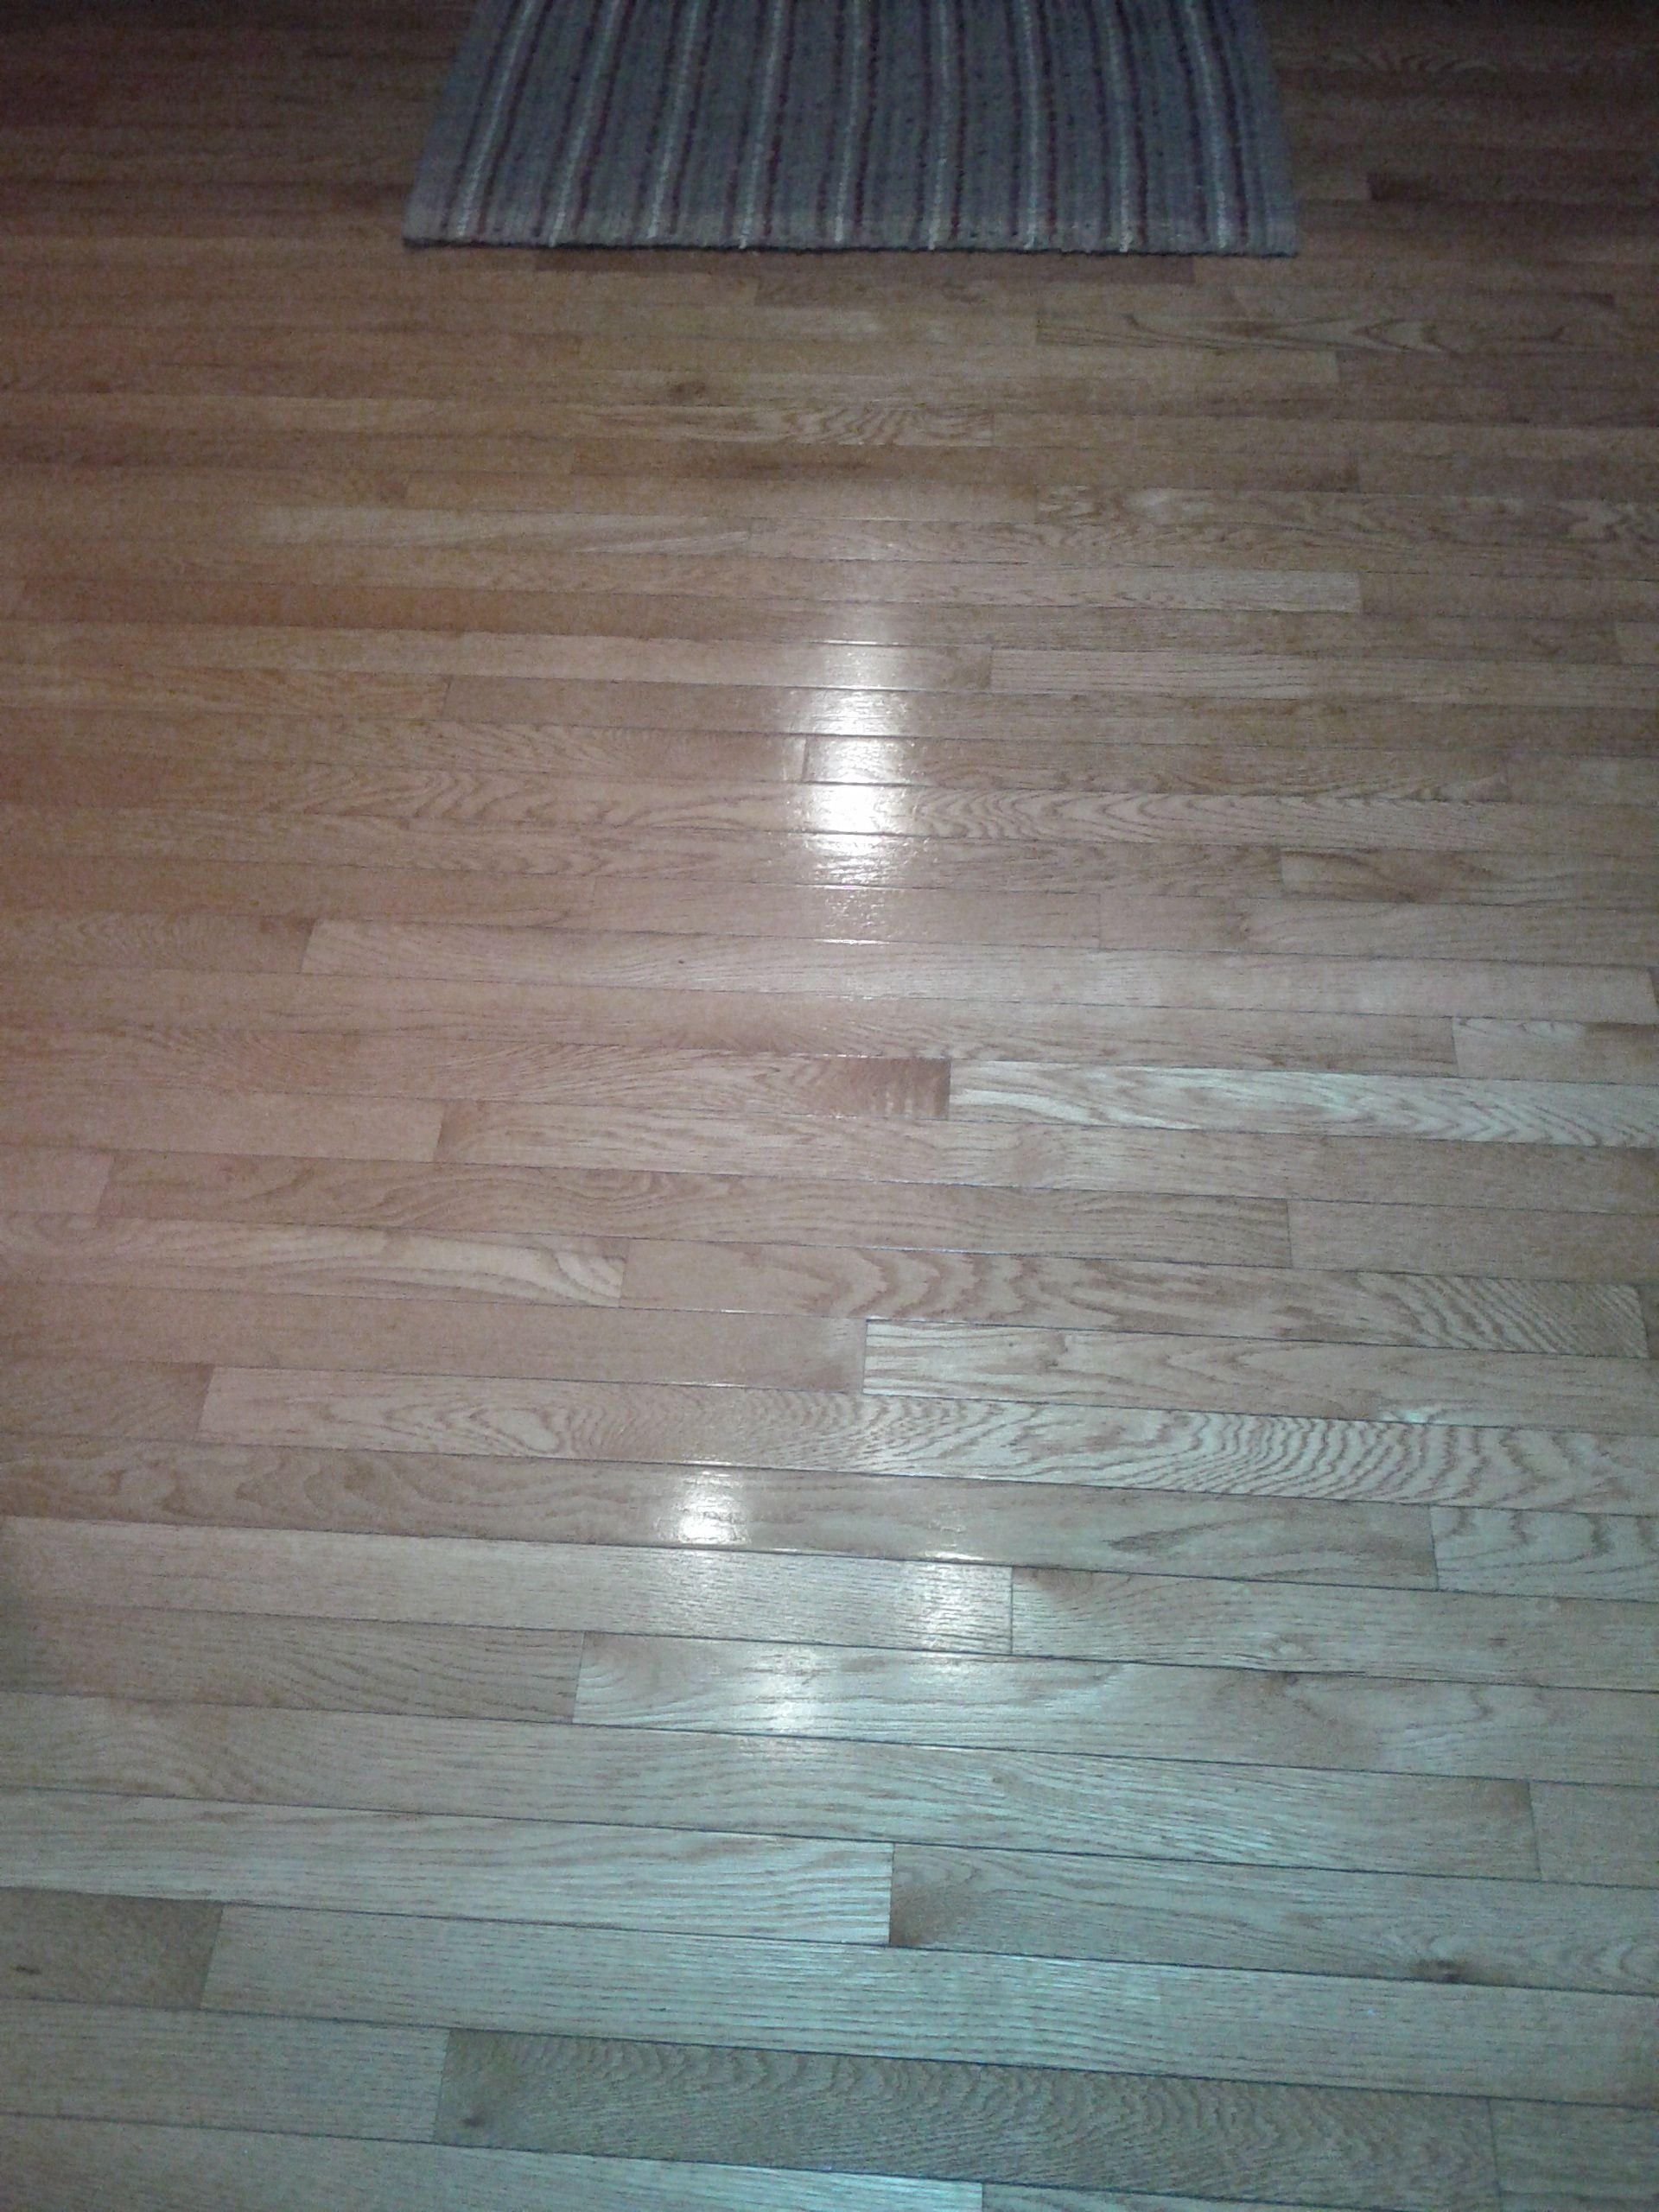 Hardwood Vinyl Floor Cleaner 4 Drops Dish Soap 1 2 Cup White Vinegar 16 Oz Water Put In Spray Bottle Mop